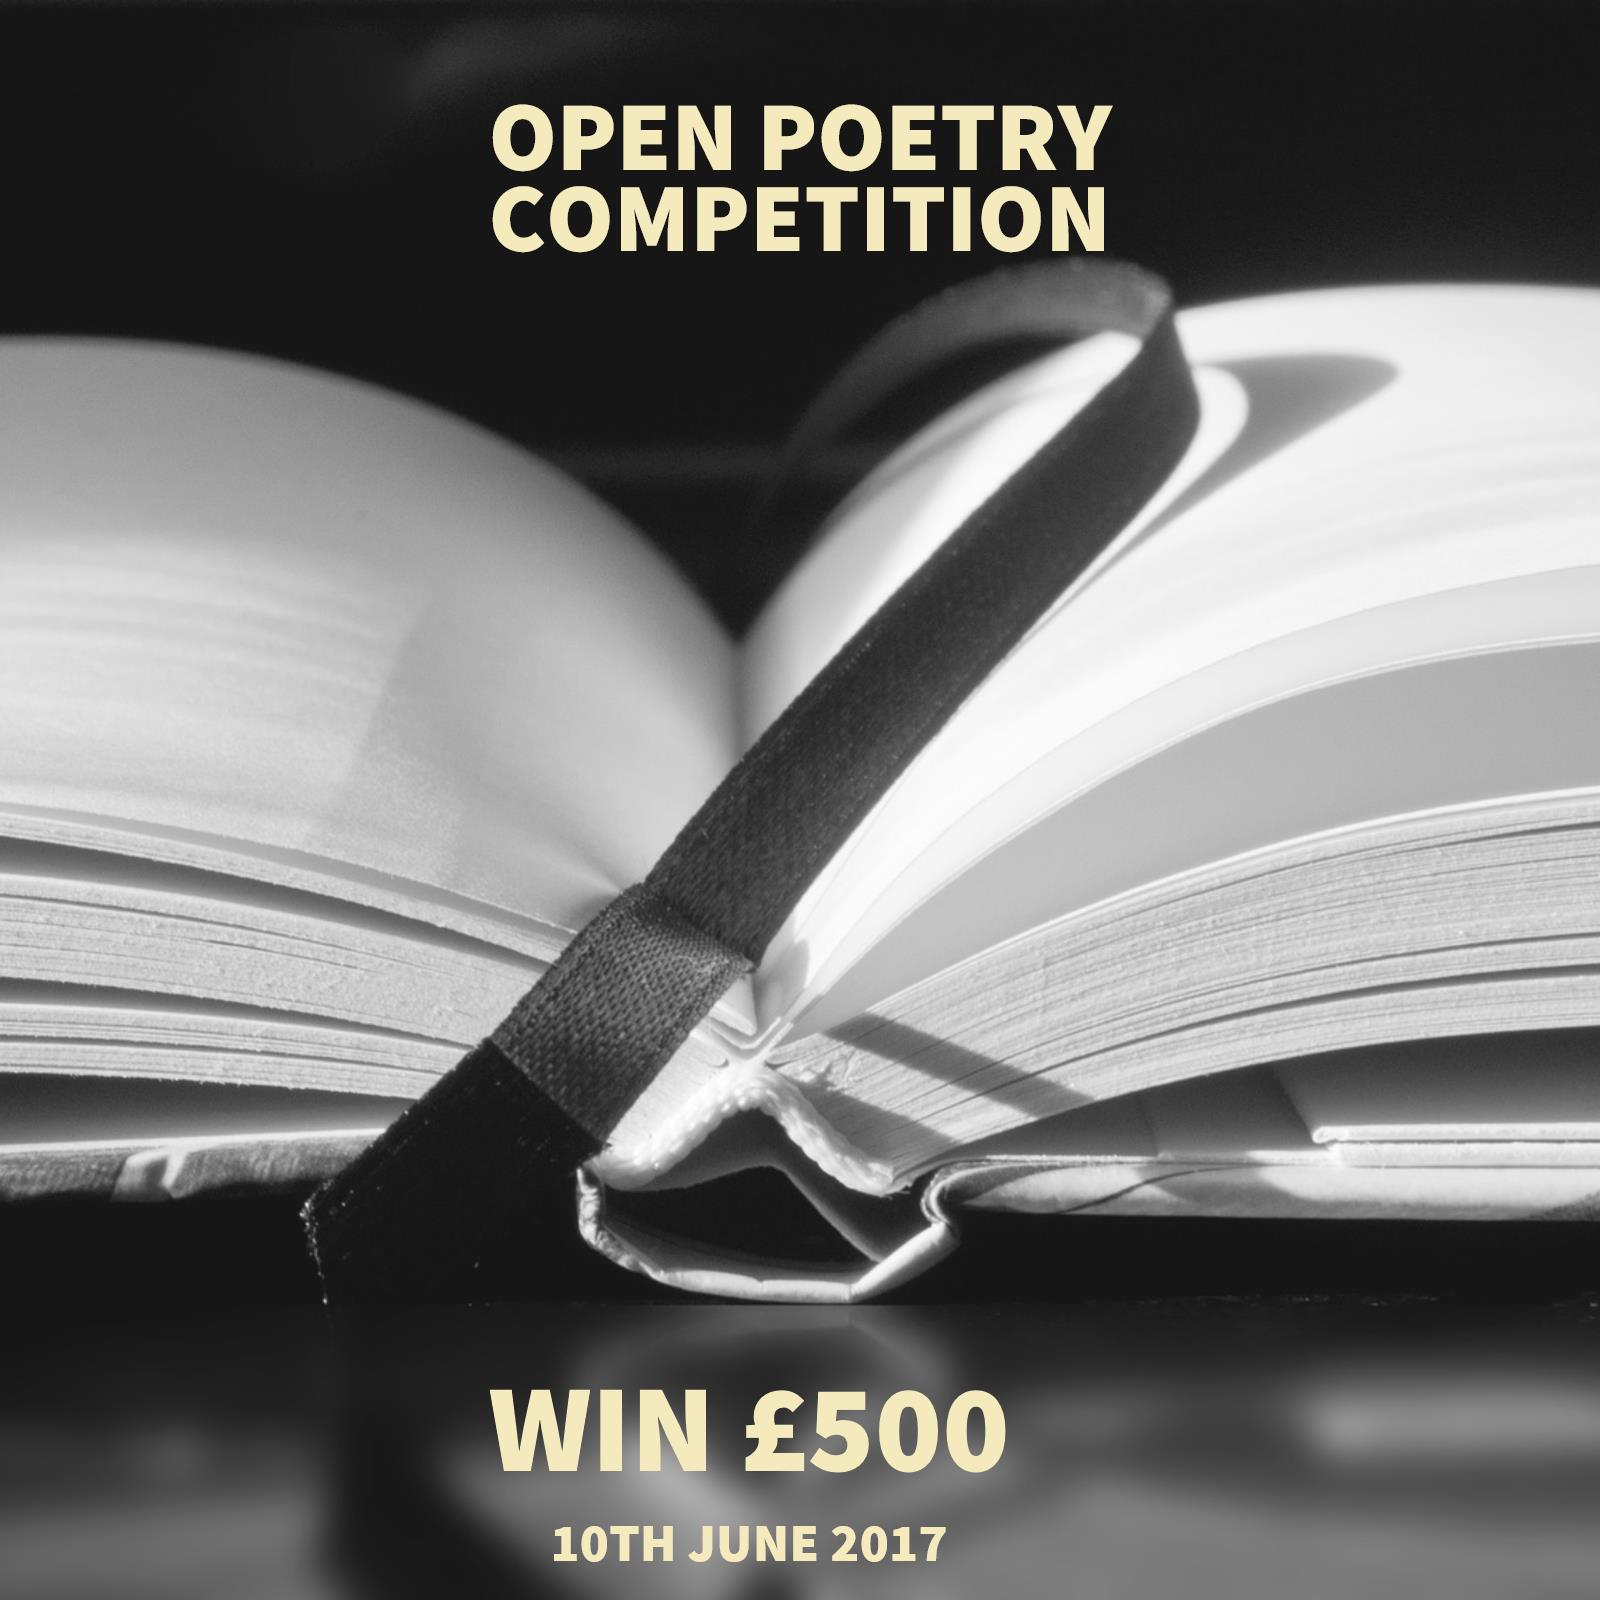 Open Poetry Contest